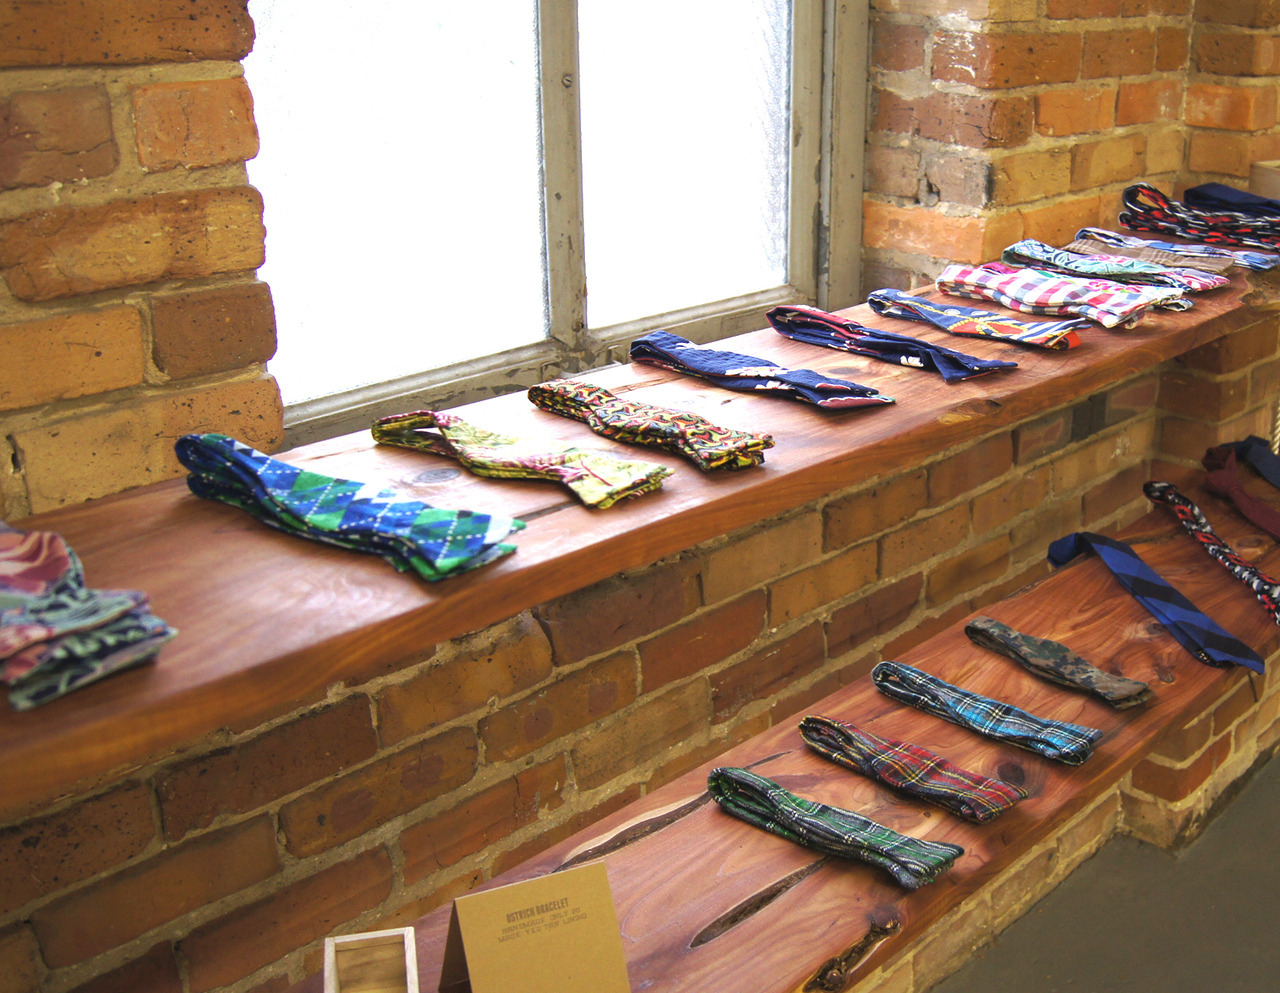 The Tie Display at the Store..Hunter Gatherer Gallery